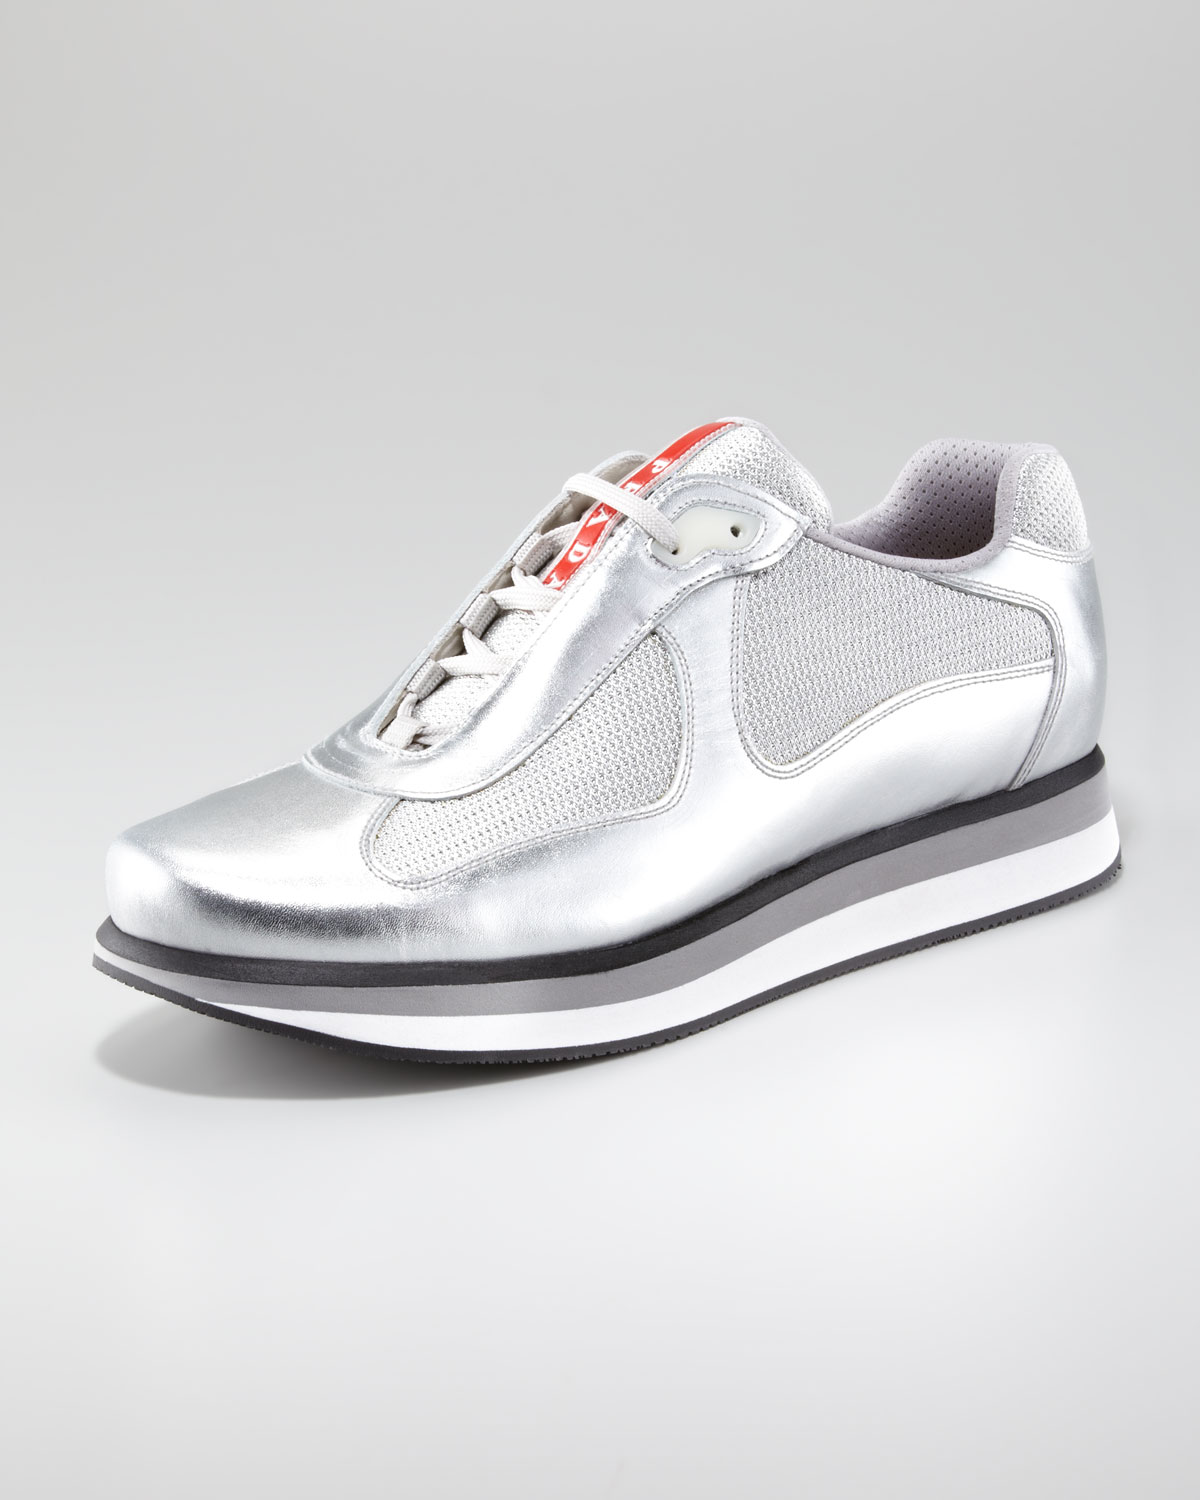 Prada Sport Metallic Low-Top Sneakers buy cheap comfortable looking for cheap online discount exclusive cheap sale fashion Style BTLI4T